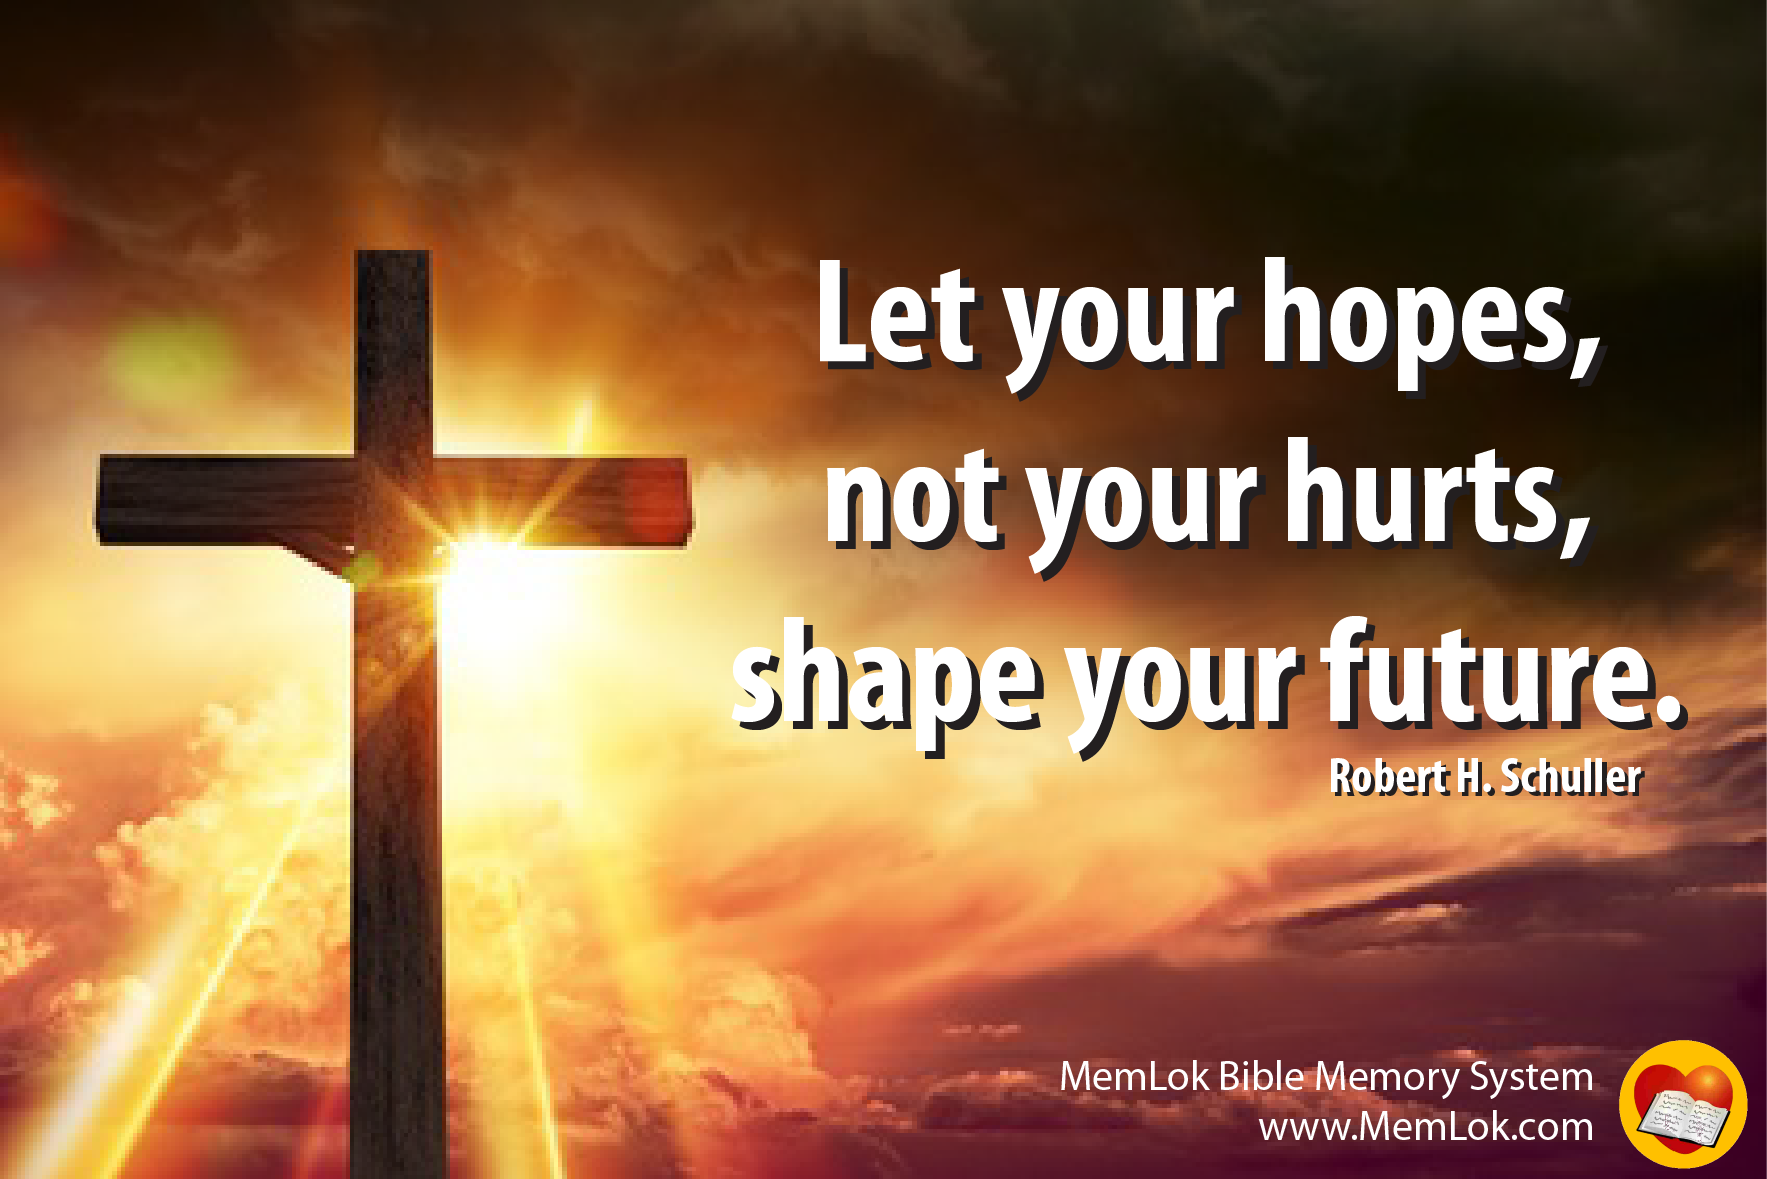 A quote by Robert. H. Schuller with the cross and light showing that we can have hope in hard times as as God shows us ways to increase hope.